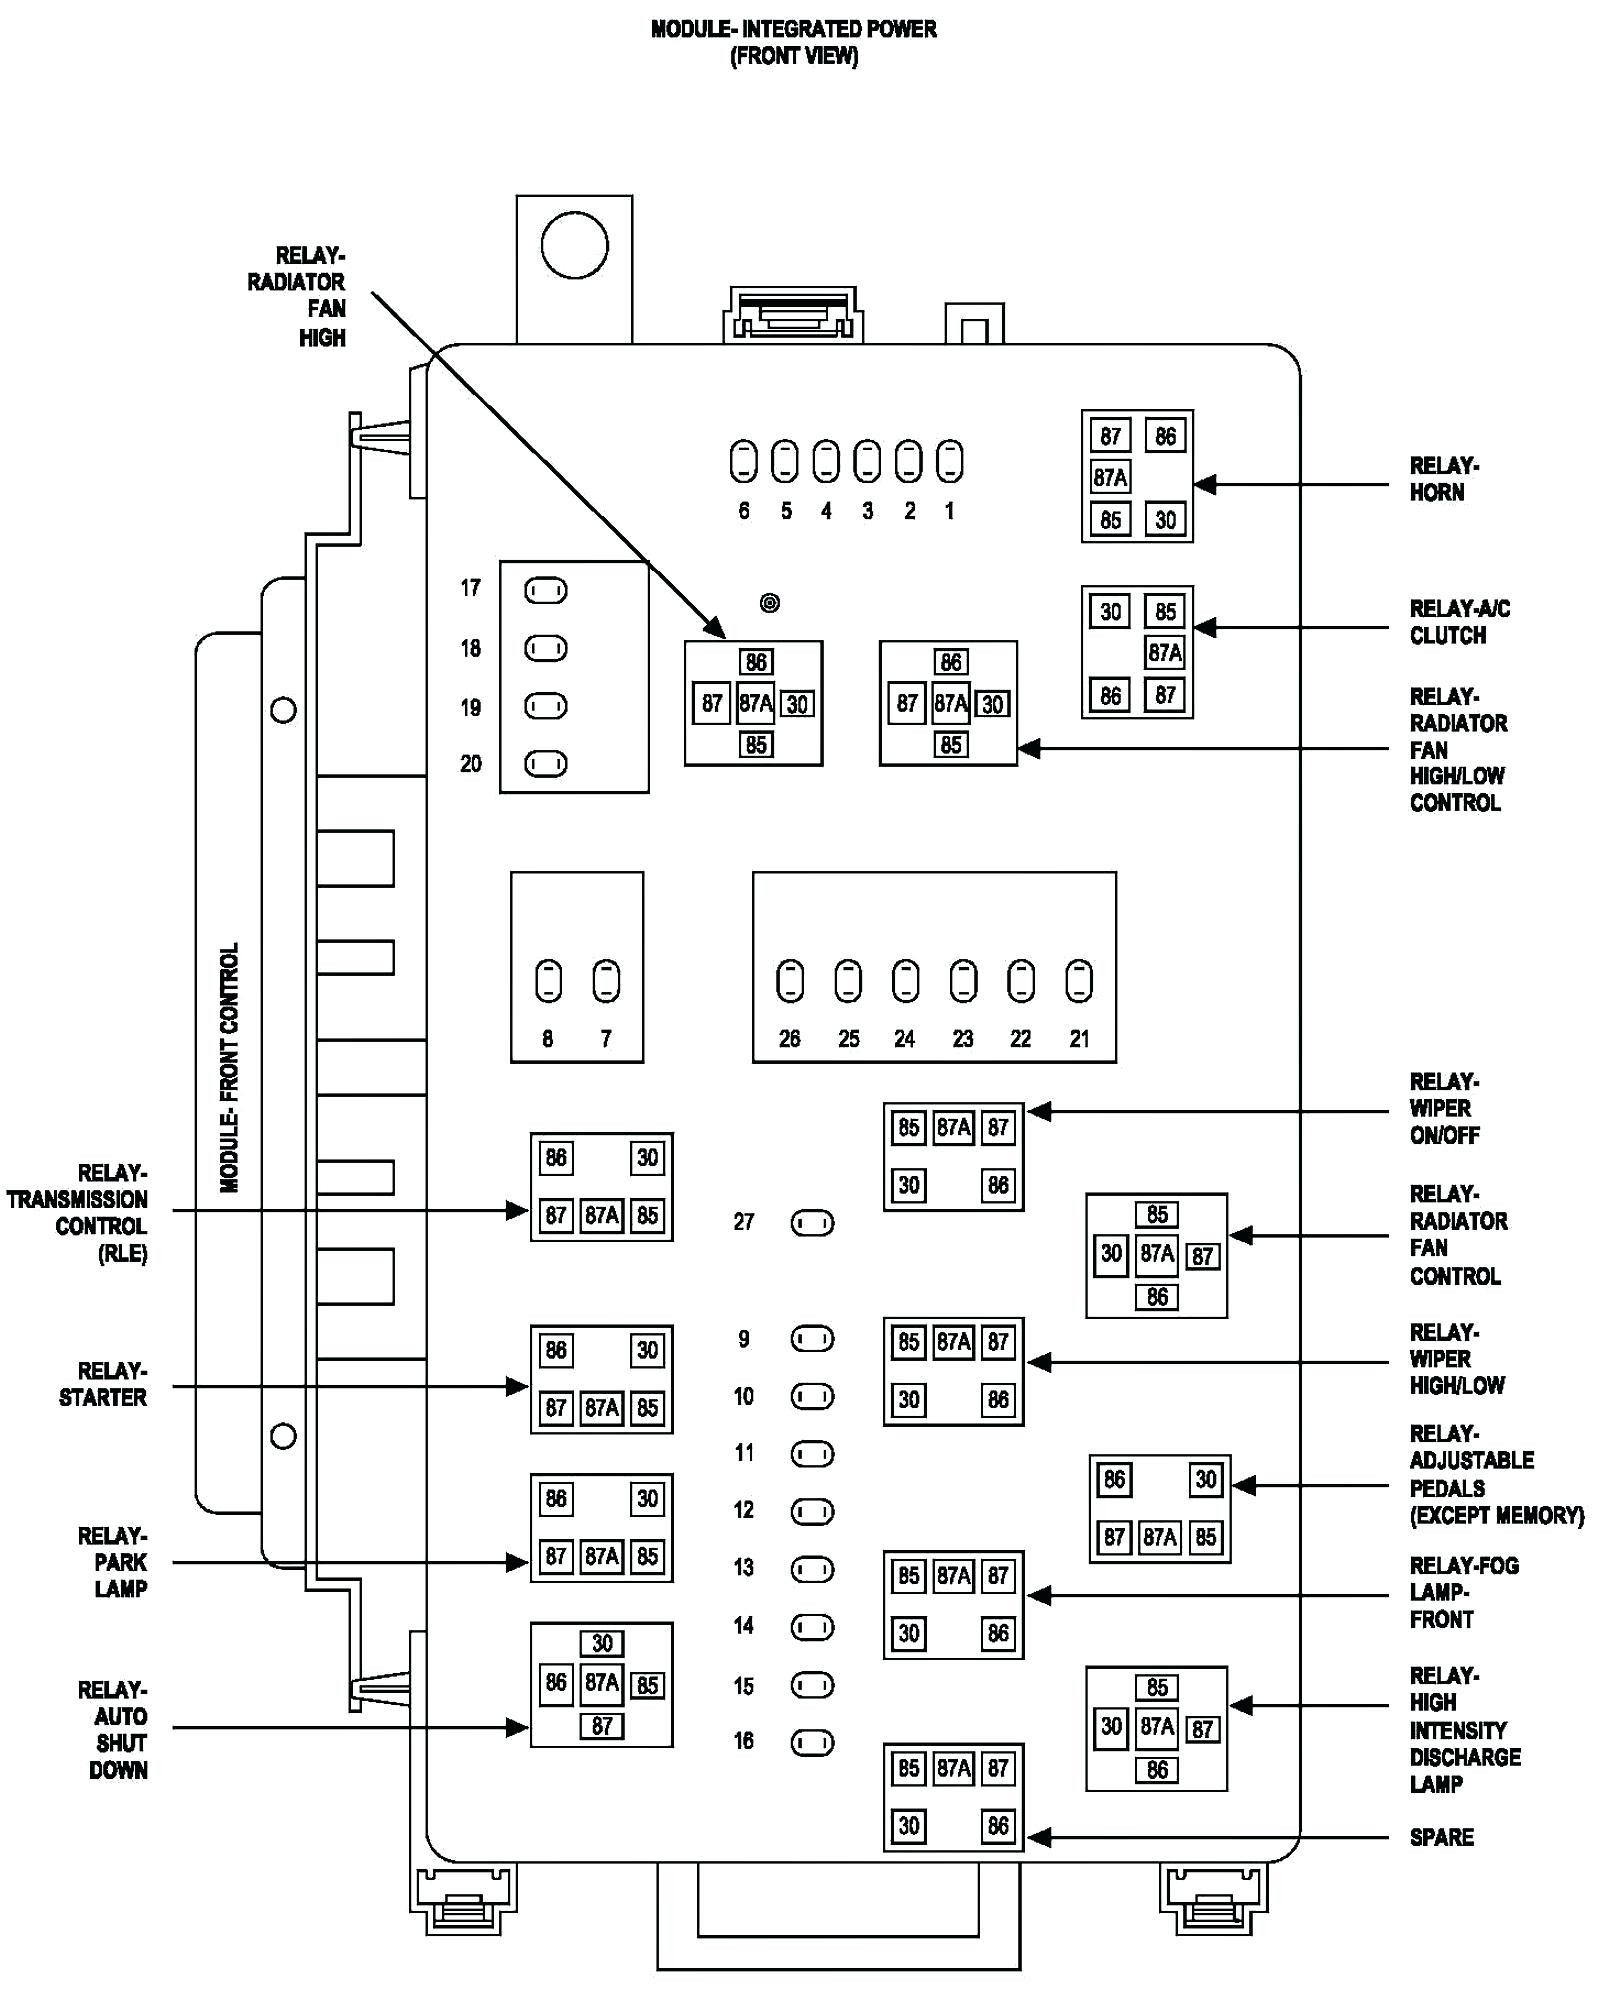 2007 Chrysler 300 Engine Diagram Chrysler 300 Fuse Box Diagram – Wire  Diagram Of 2007 Chrysler